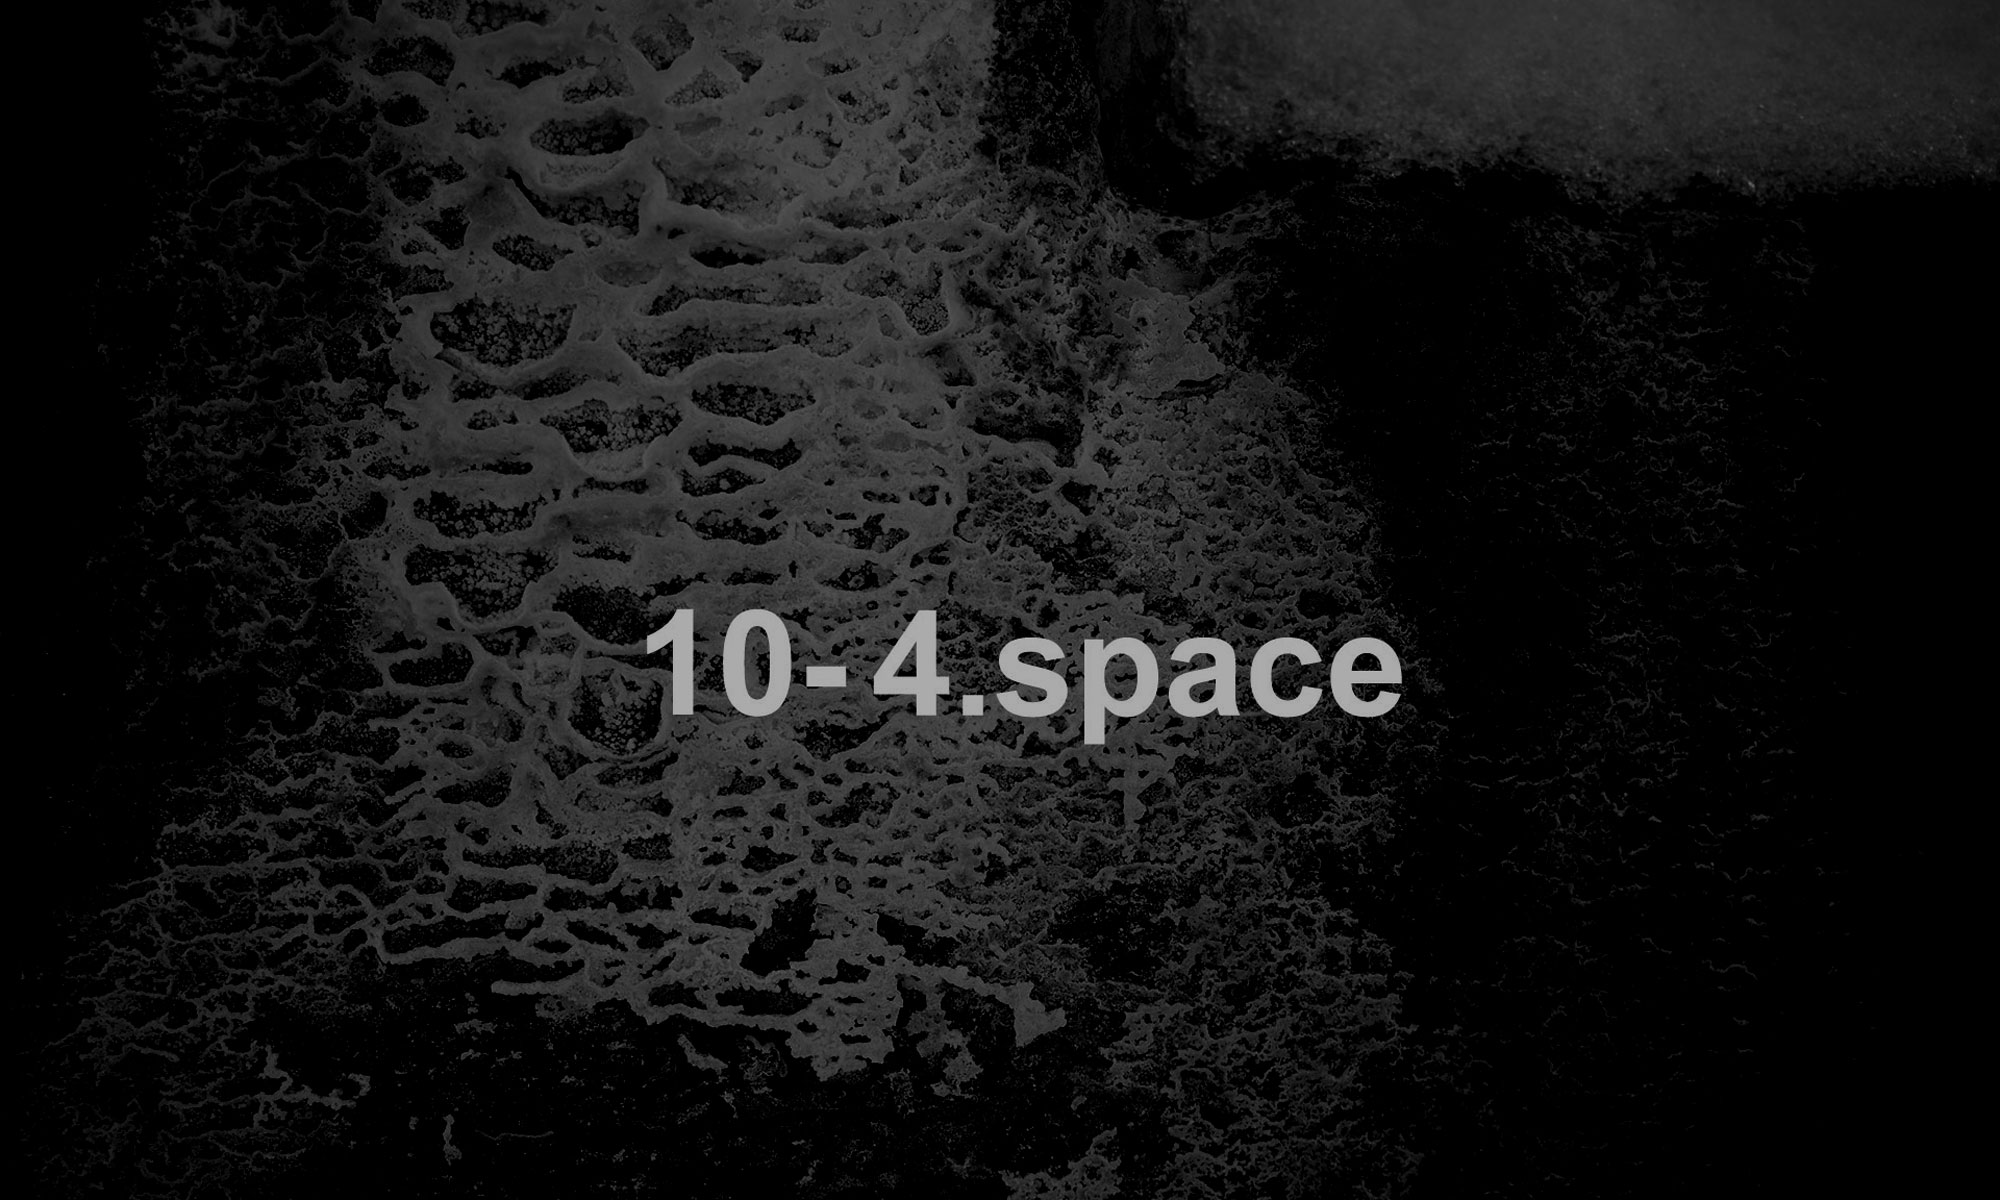 10-4.space